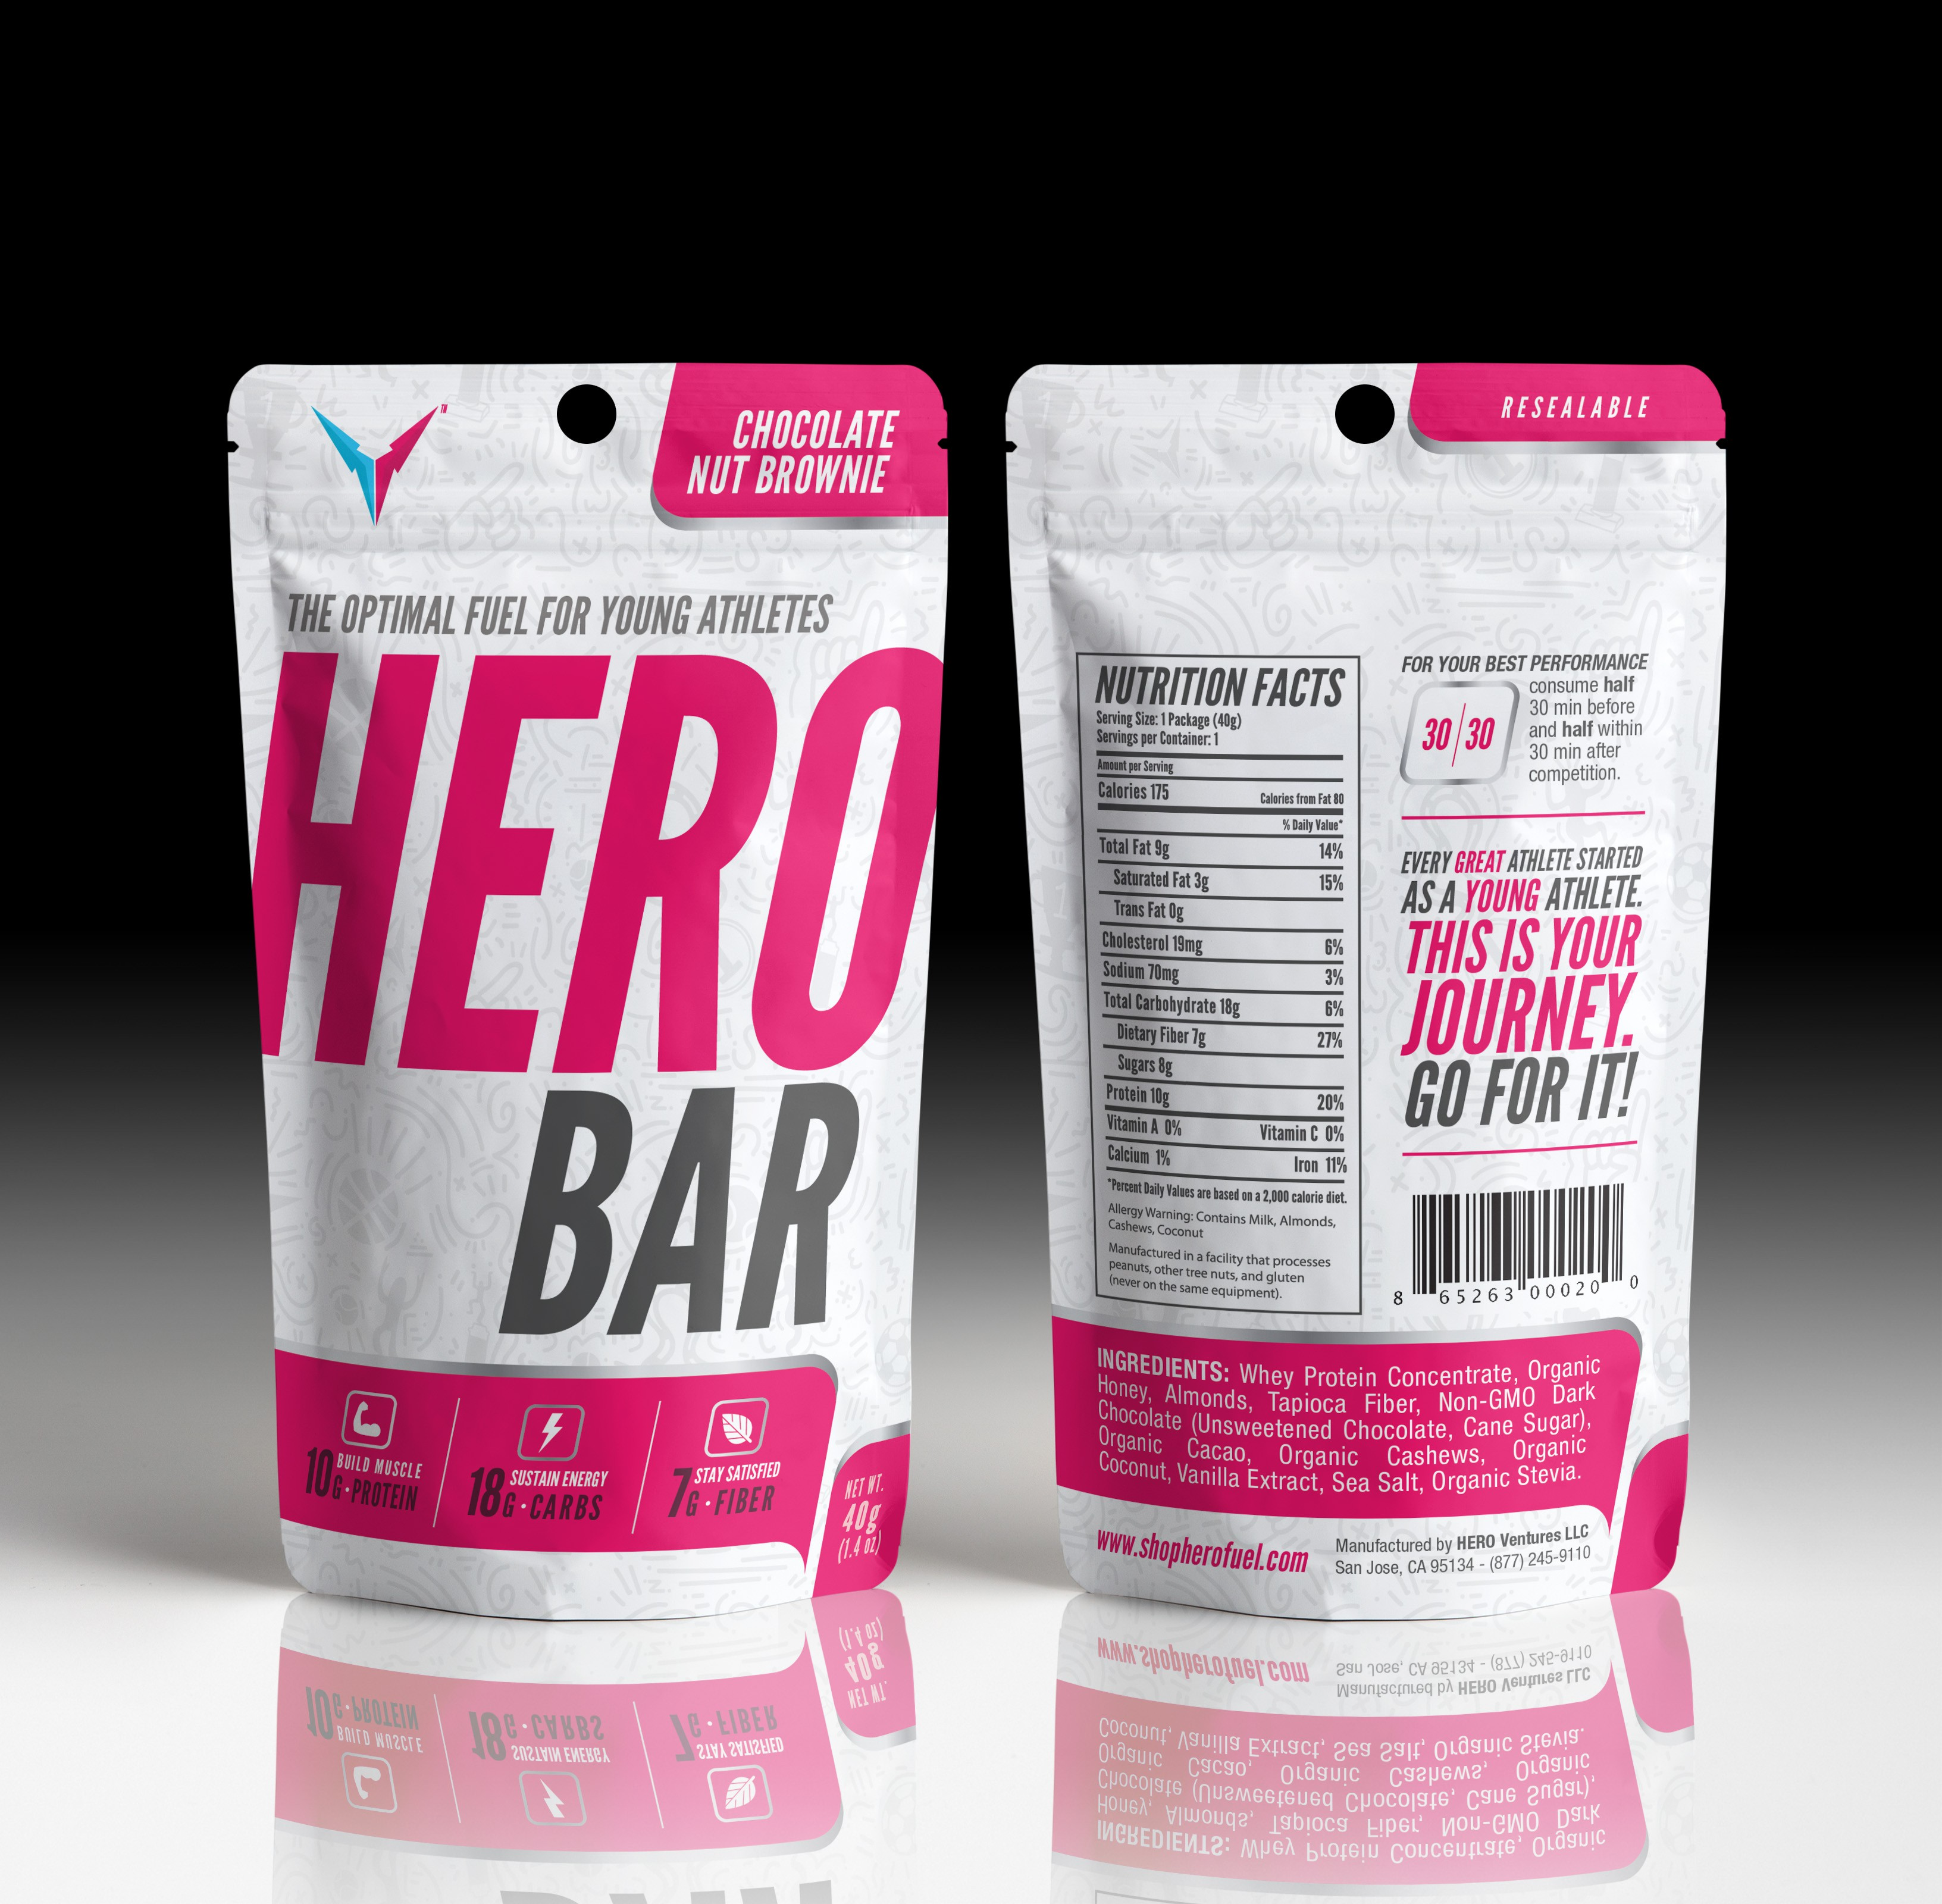 HERO Bar-Design a bold package for a nutrition bar for young athletes!